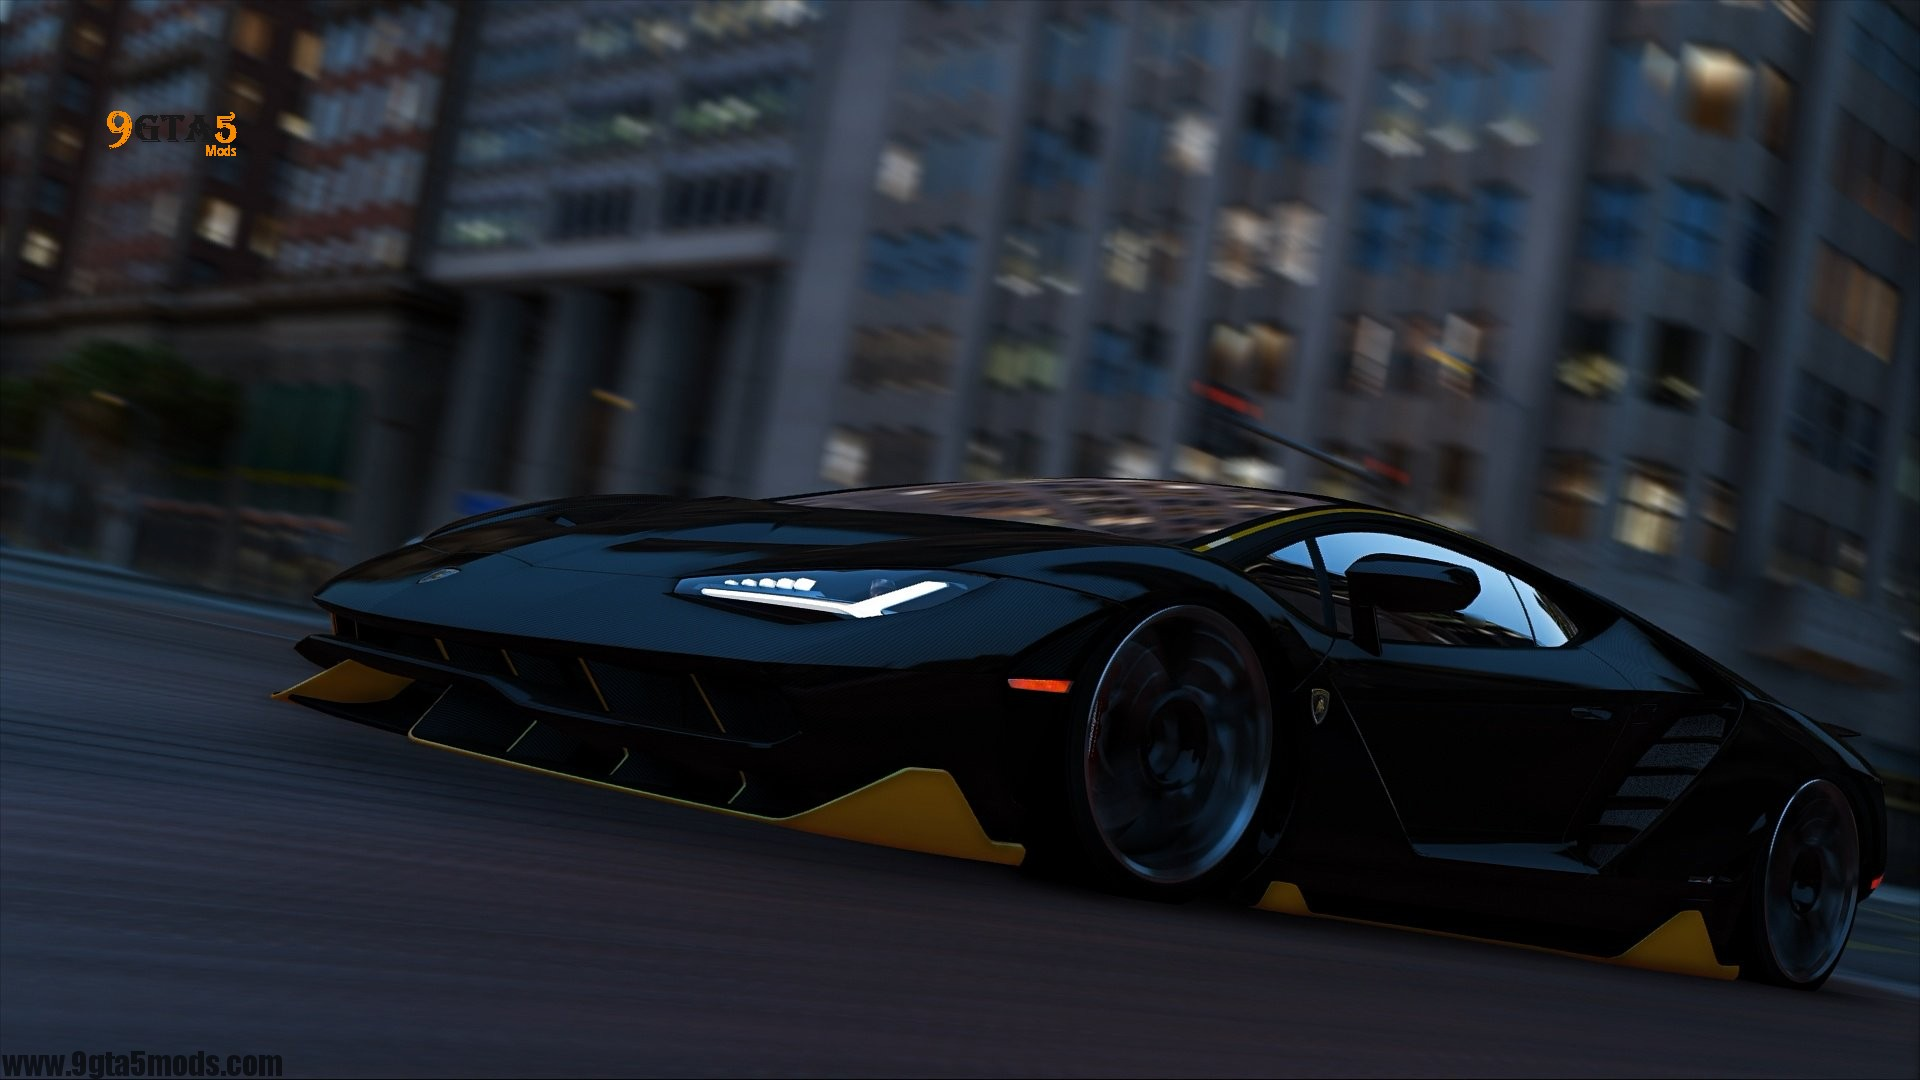 2016 Lamborghini Centenario Lp770 4 Gta 5 Vehicles